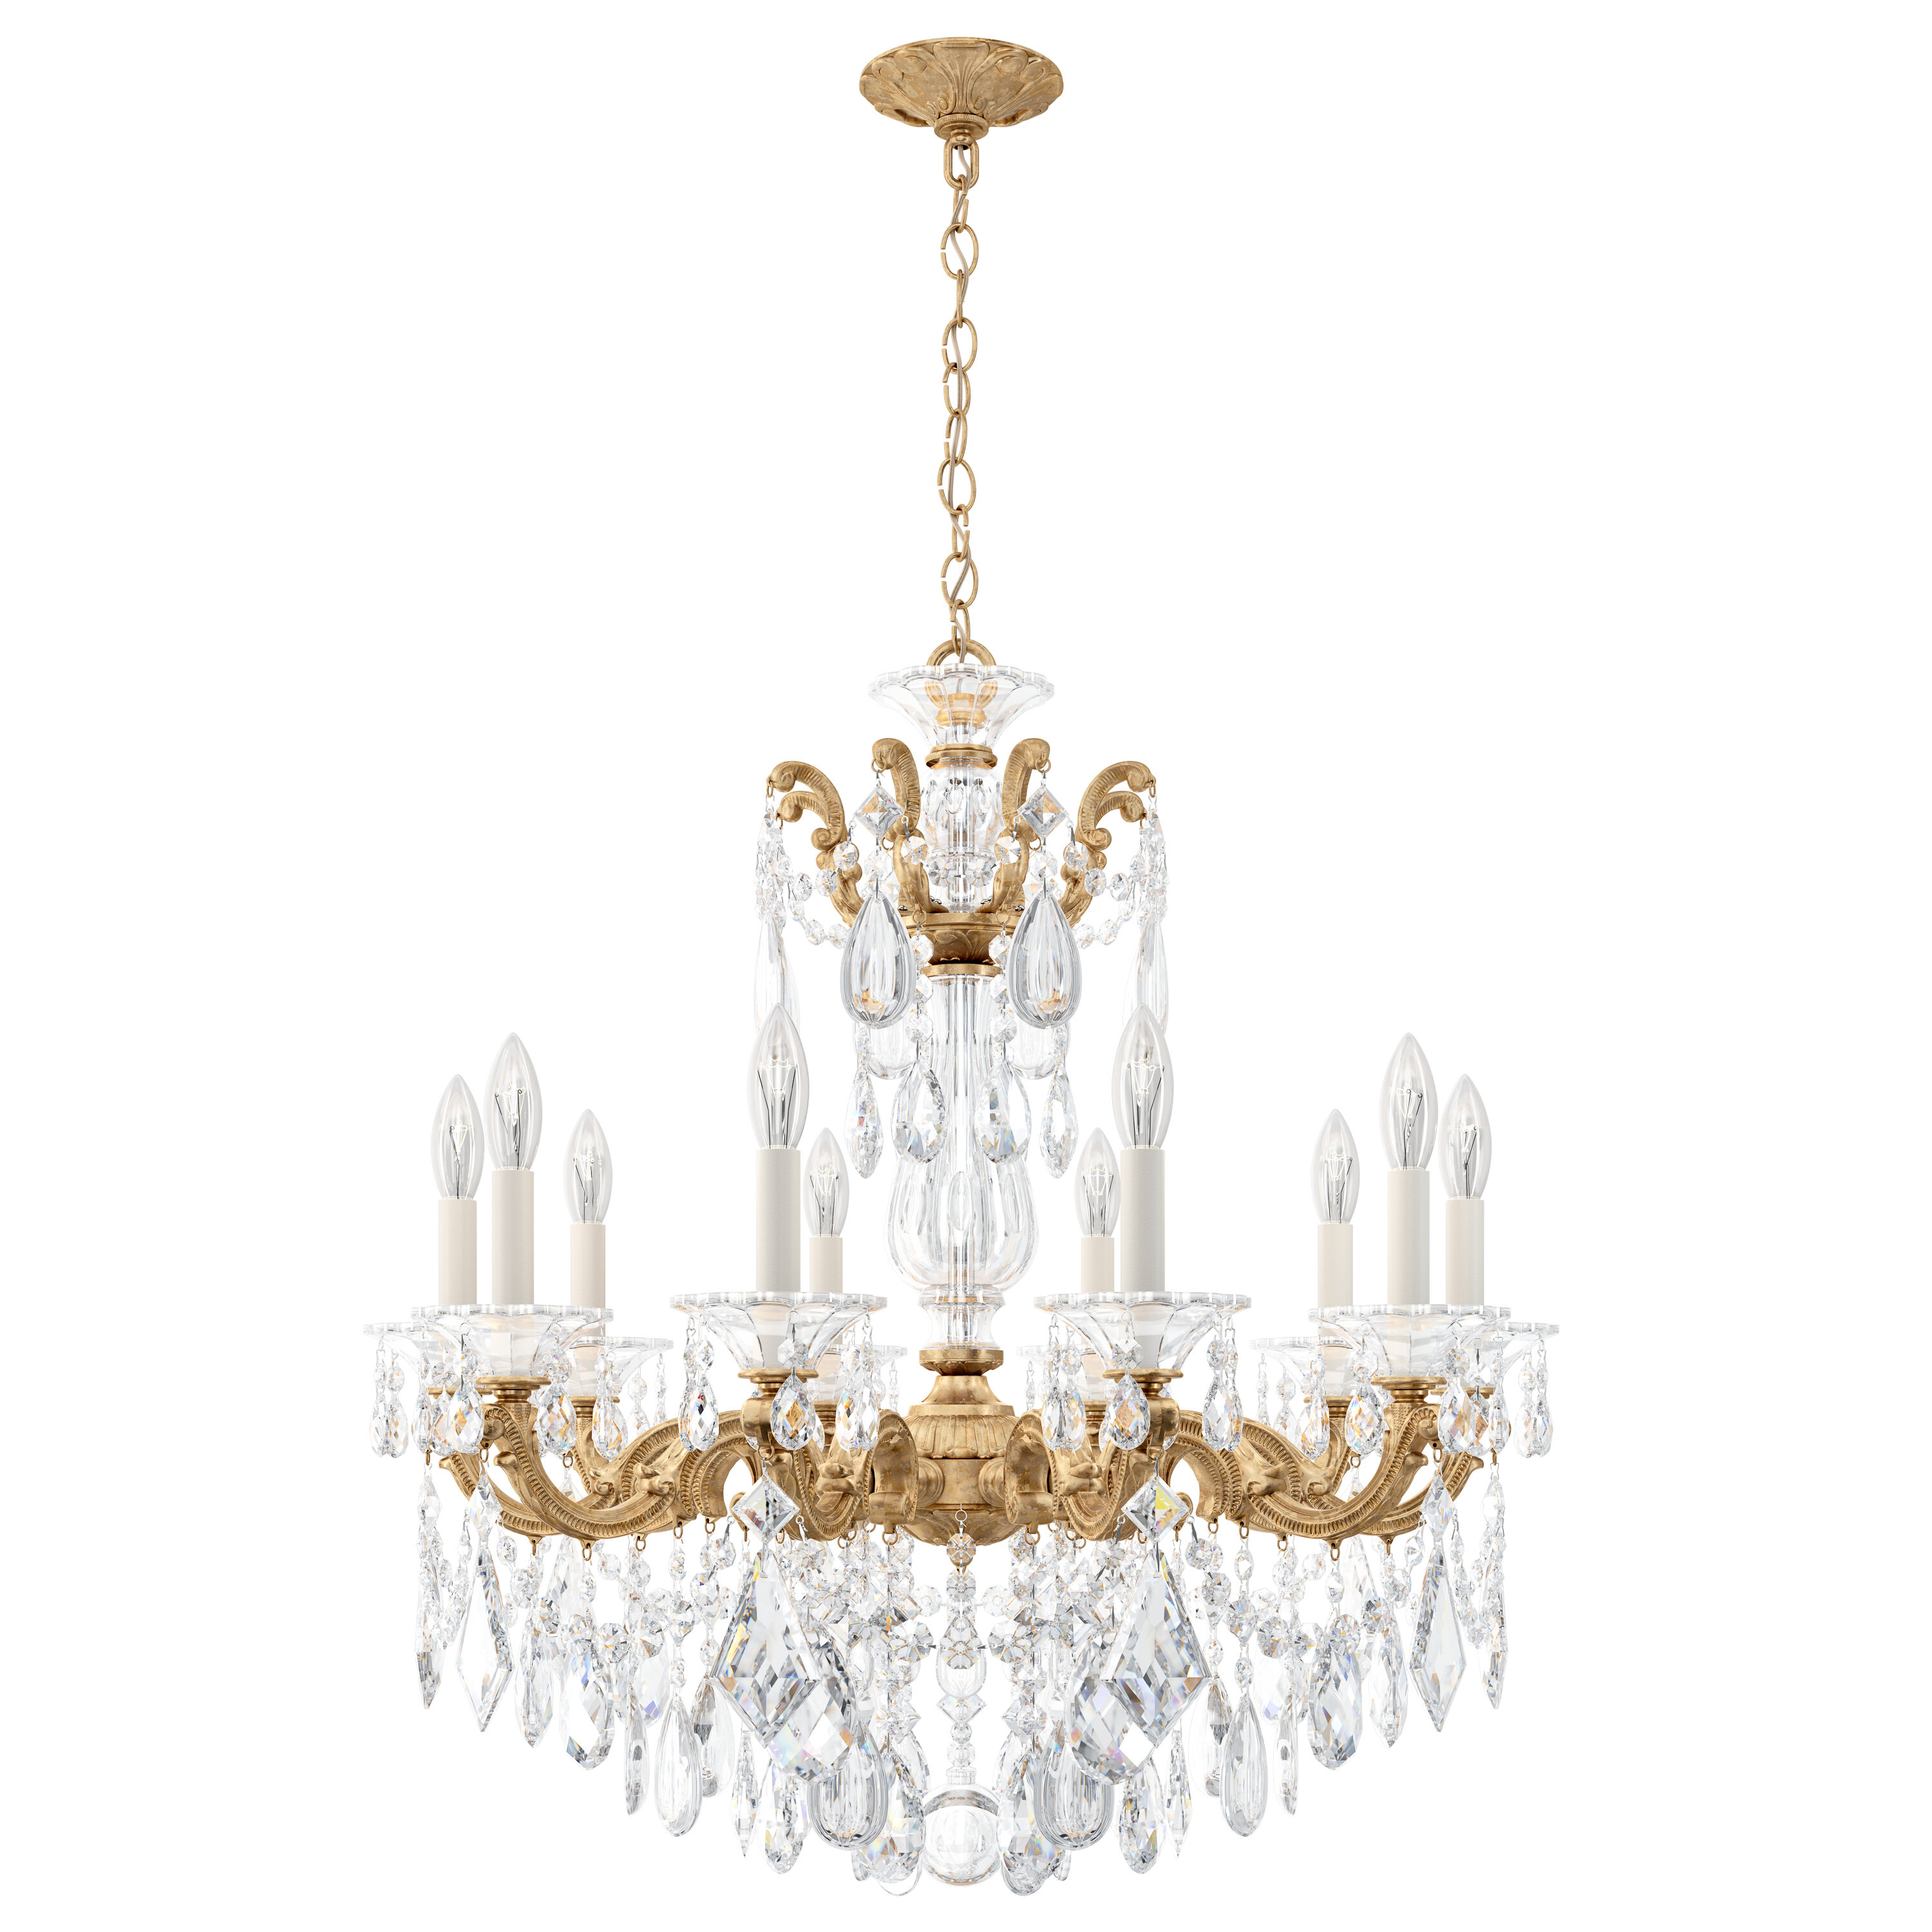 Schonbek La Scala 10 Light Candle Style Classic Traditional Chandelier With Crystal Accents Wayfair